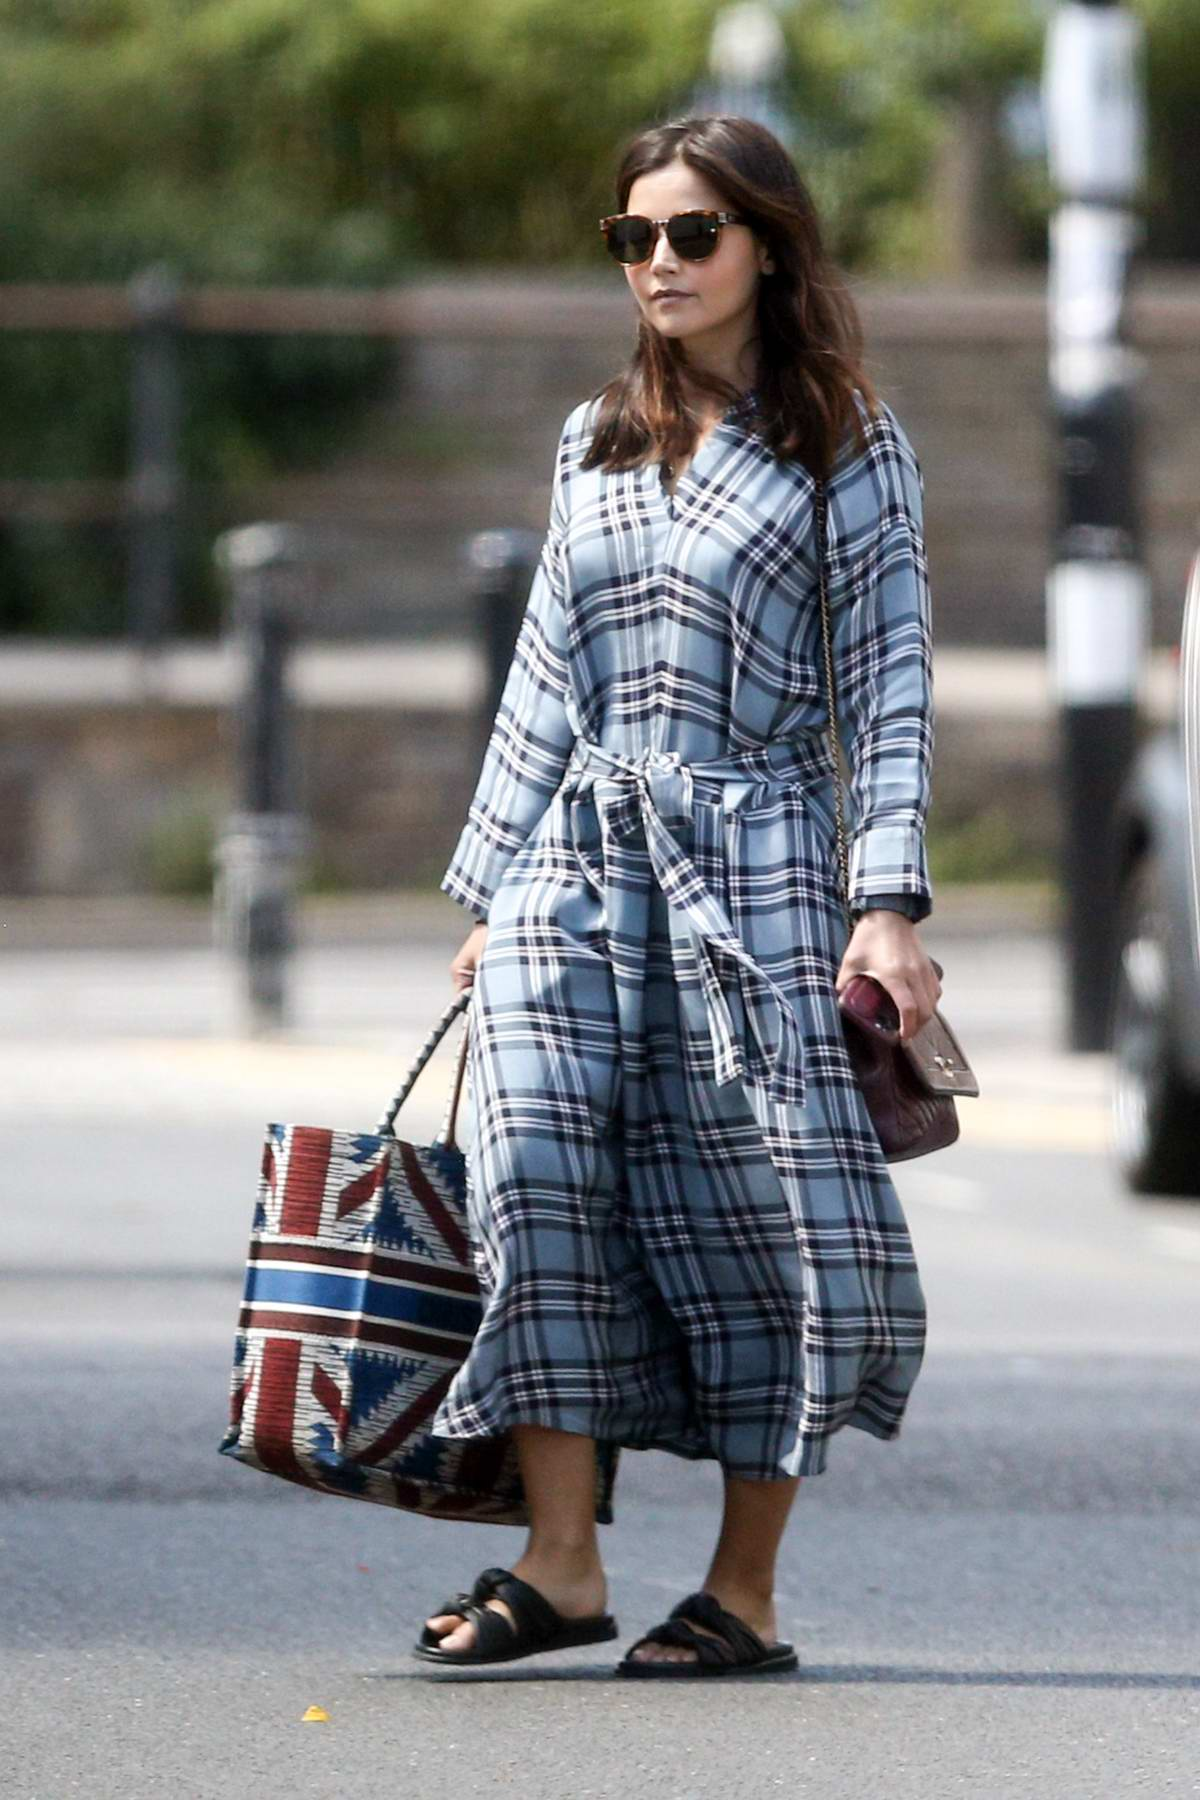 Jenna Coleman seen wearing a plaid robe dress as she leaves her new home in London, UK